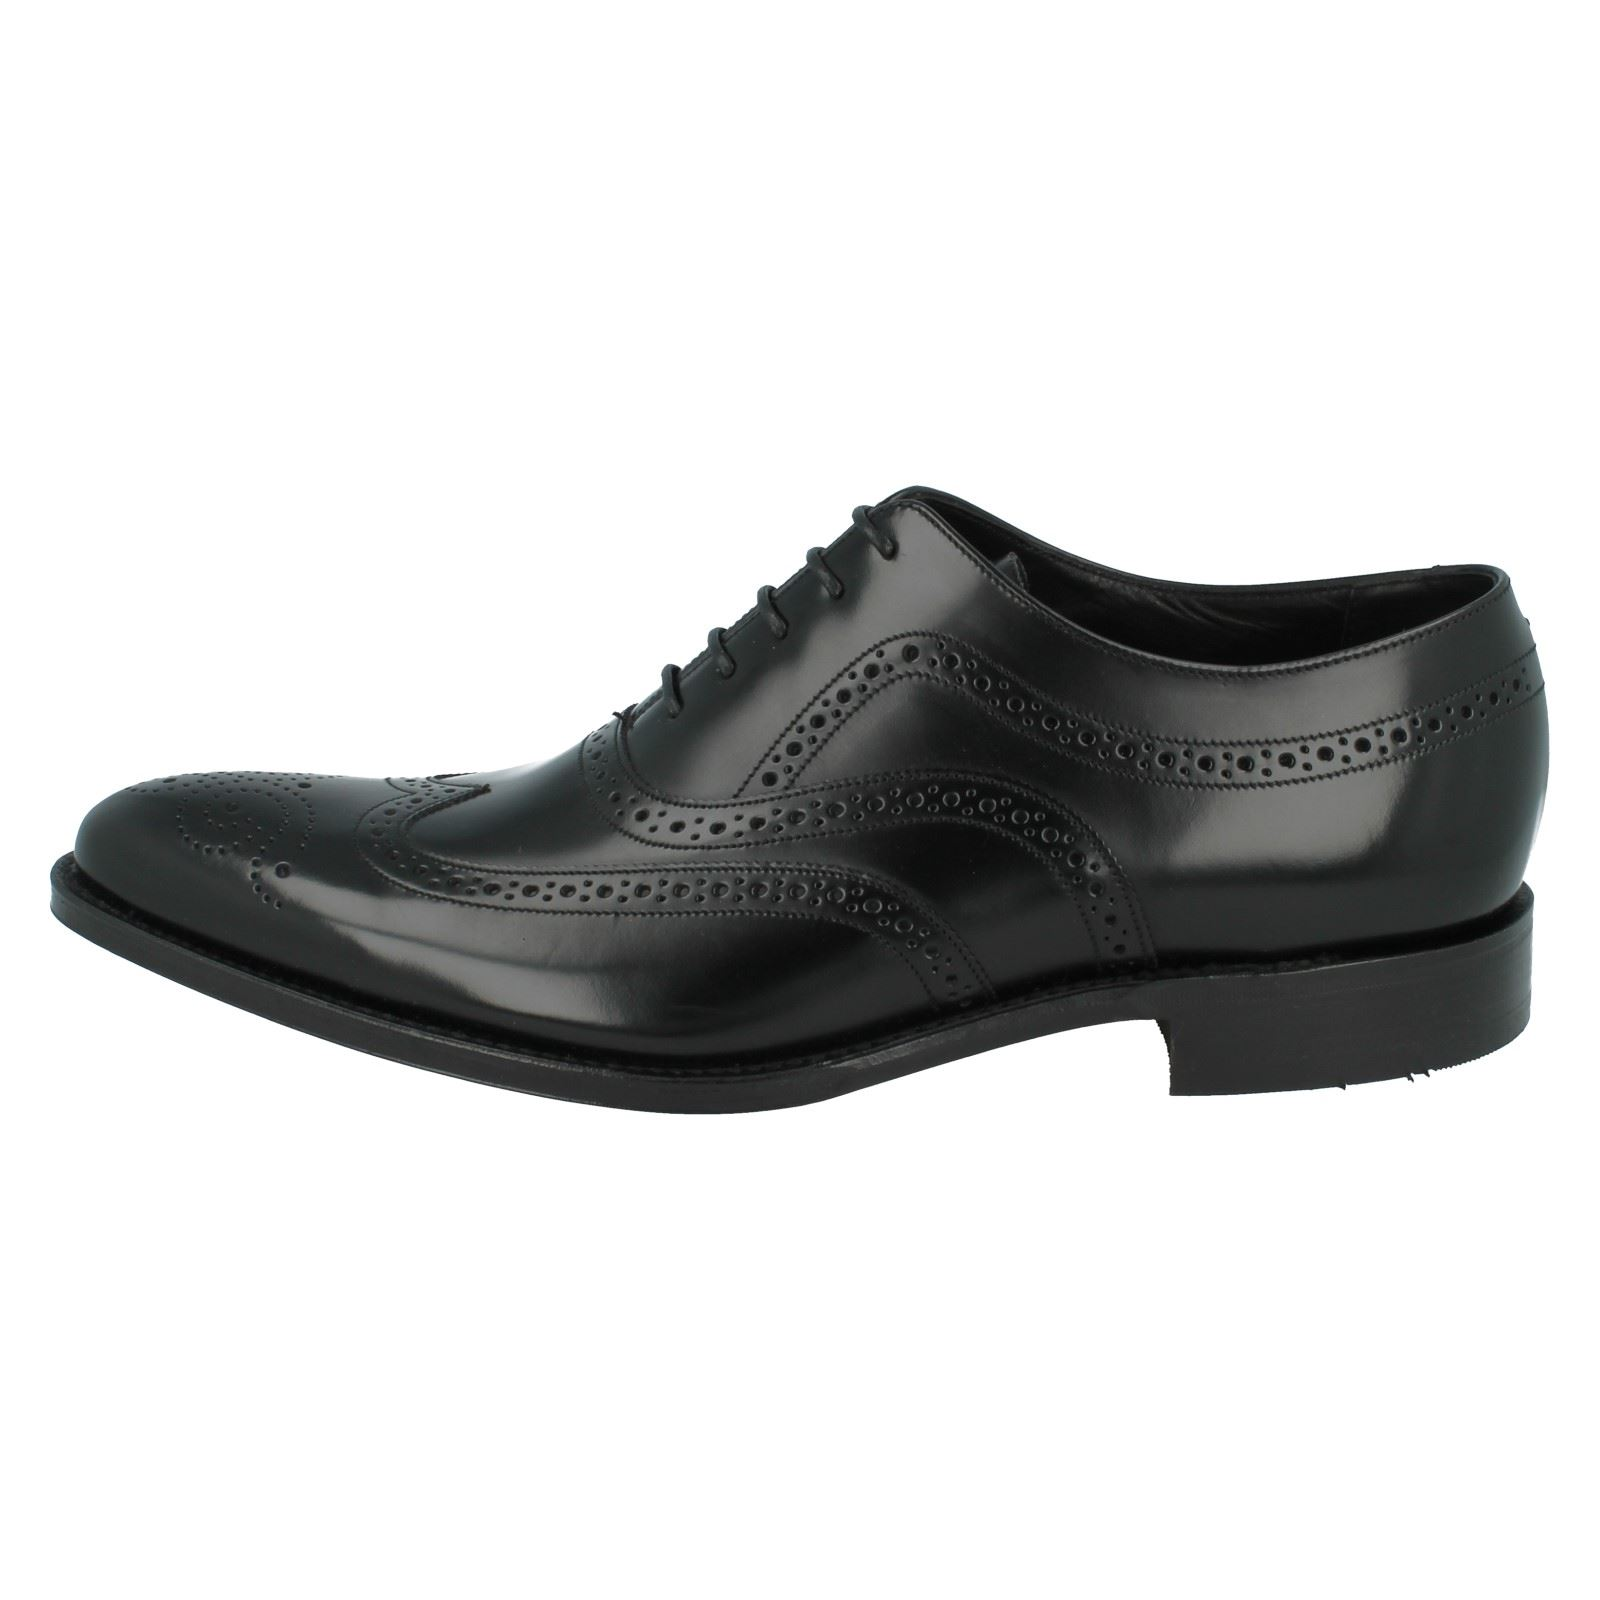 Mens F Loake Formal Shoes Fitting F Mens Style - Jones 1a2551